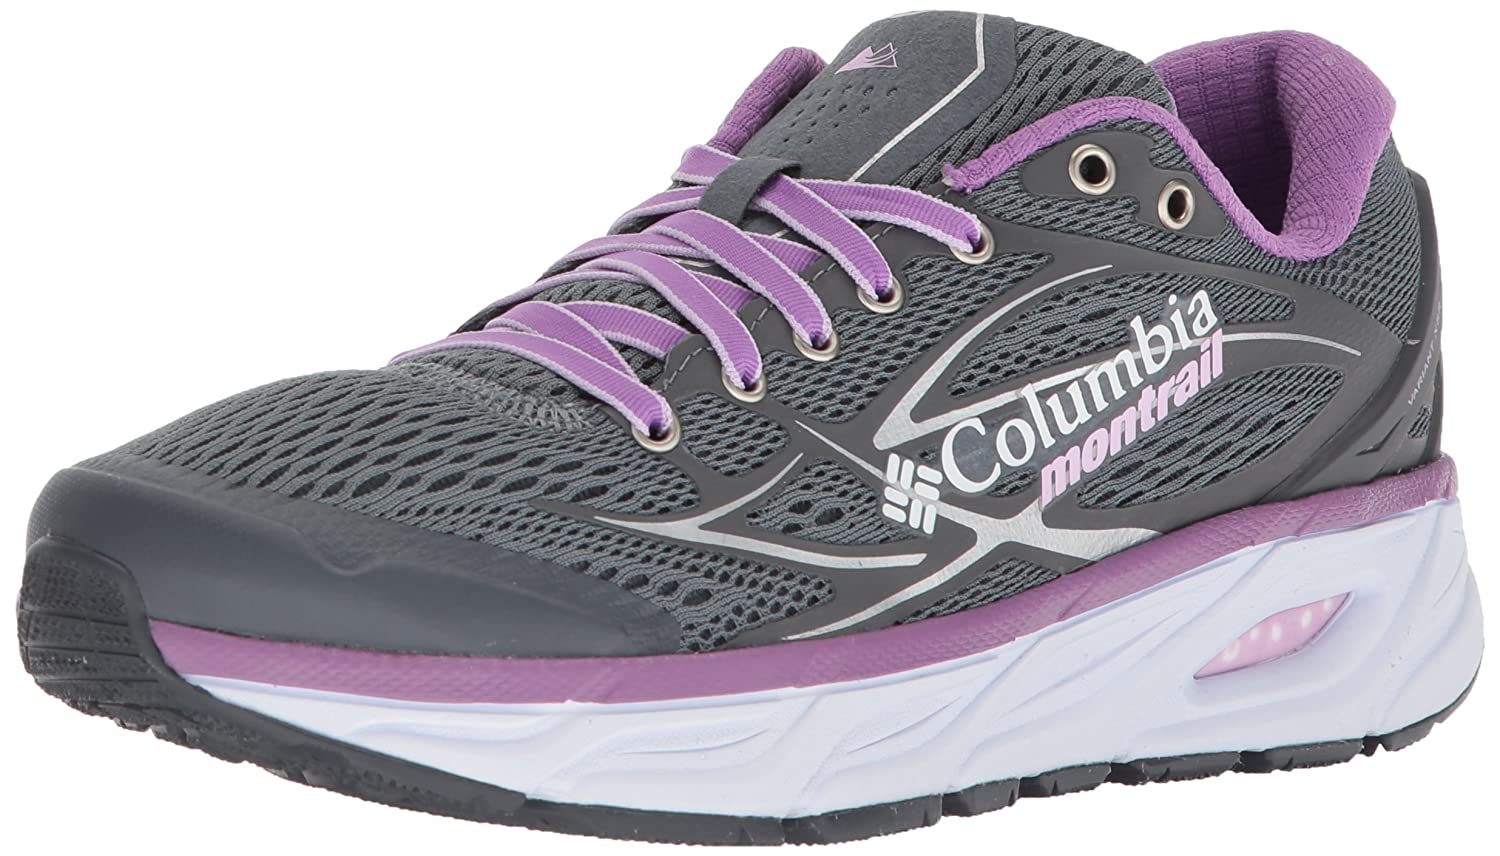 Columbia Montrail Women's Variant X.S.R. Trail Running Shoe B072WJLLKY 8.5 B(M) US|Grey Ash, Phantom Purple